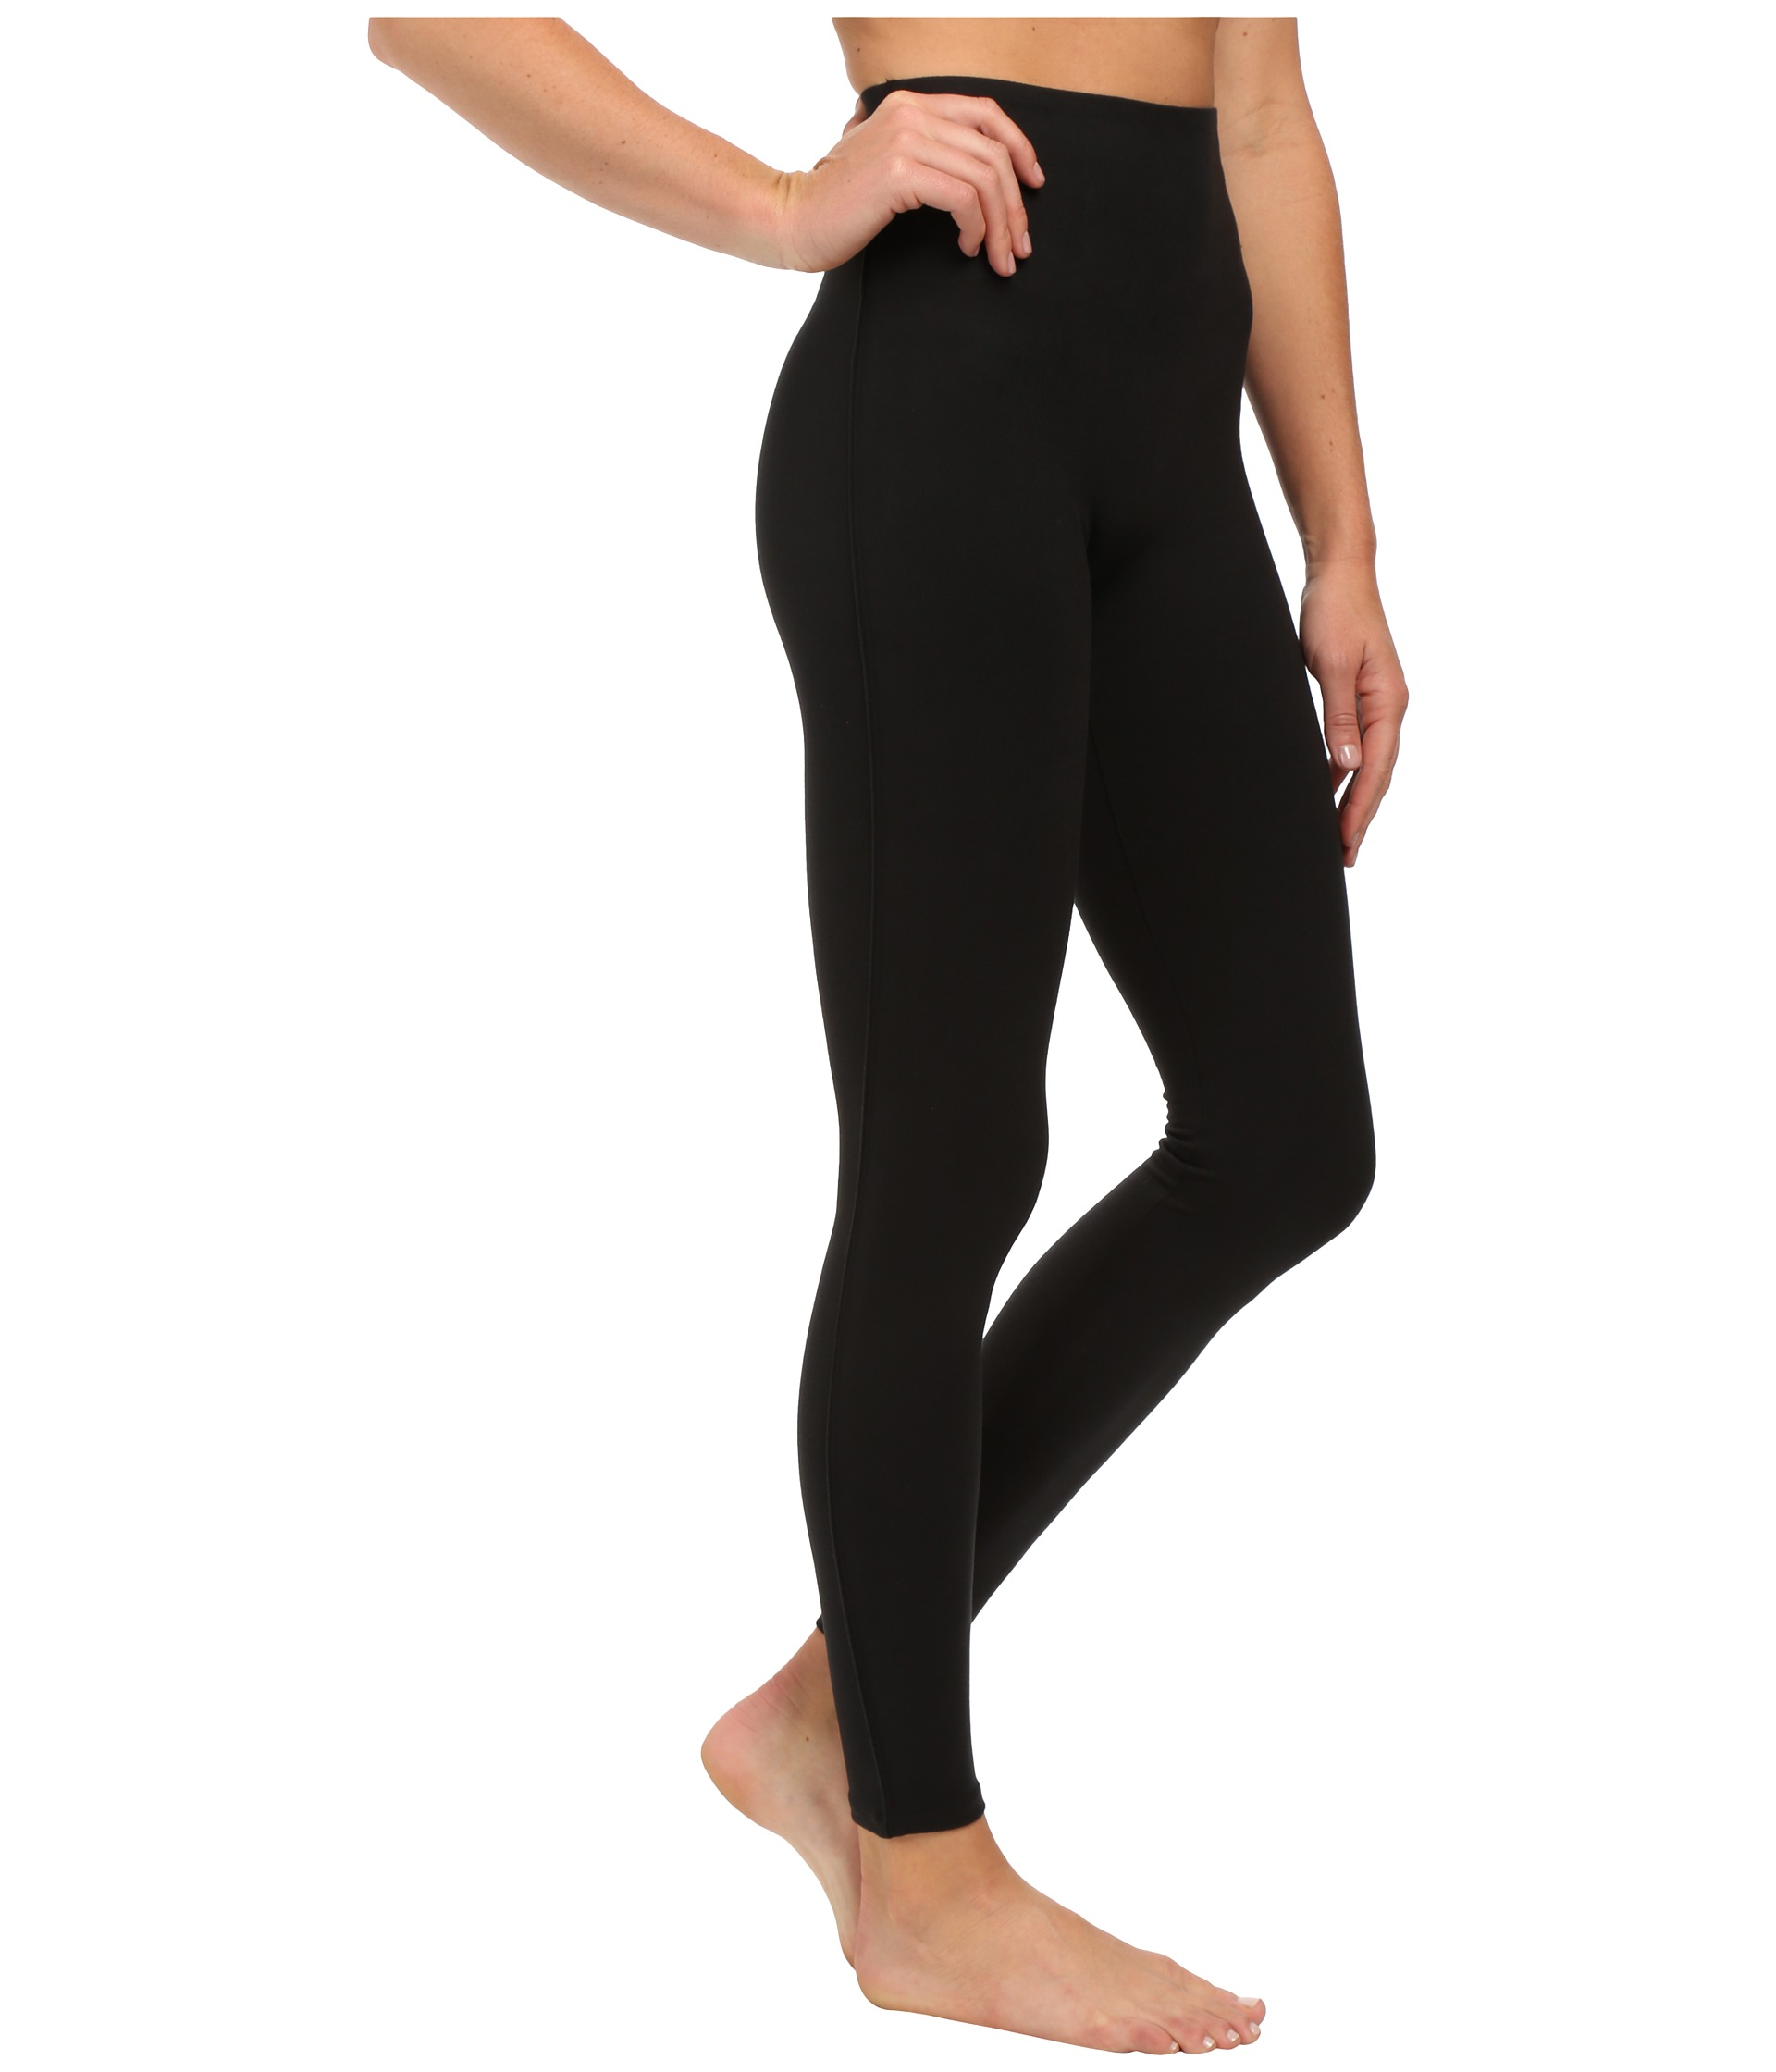 spanx brand review If the spanx undergarments have helped women of all shapes and sizes feel amazing by hiding and tucking away certain areas of the body, imagine the potential these arm tights could have in.